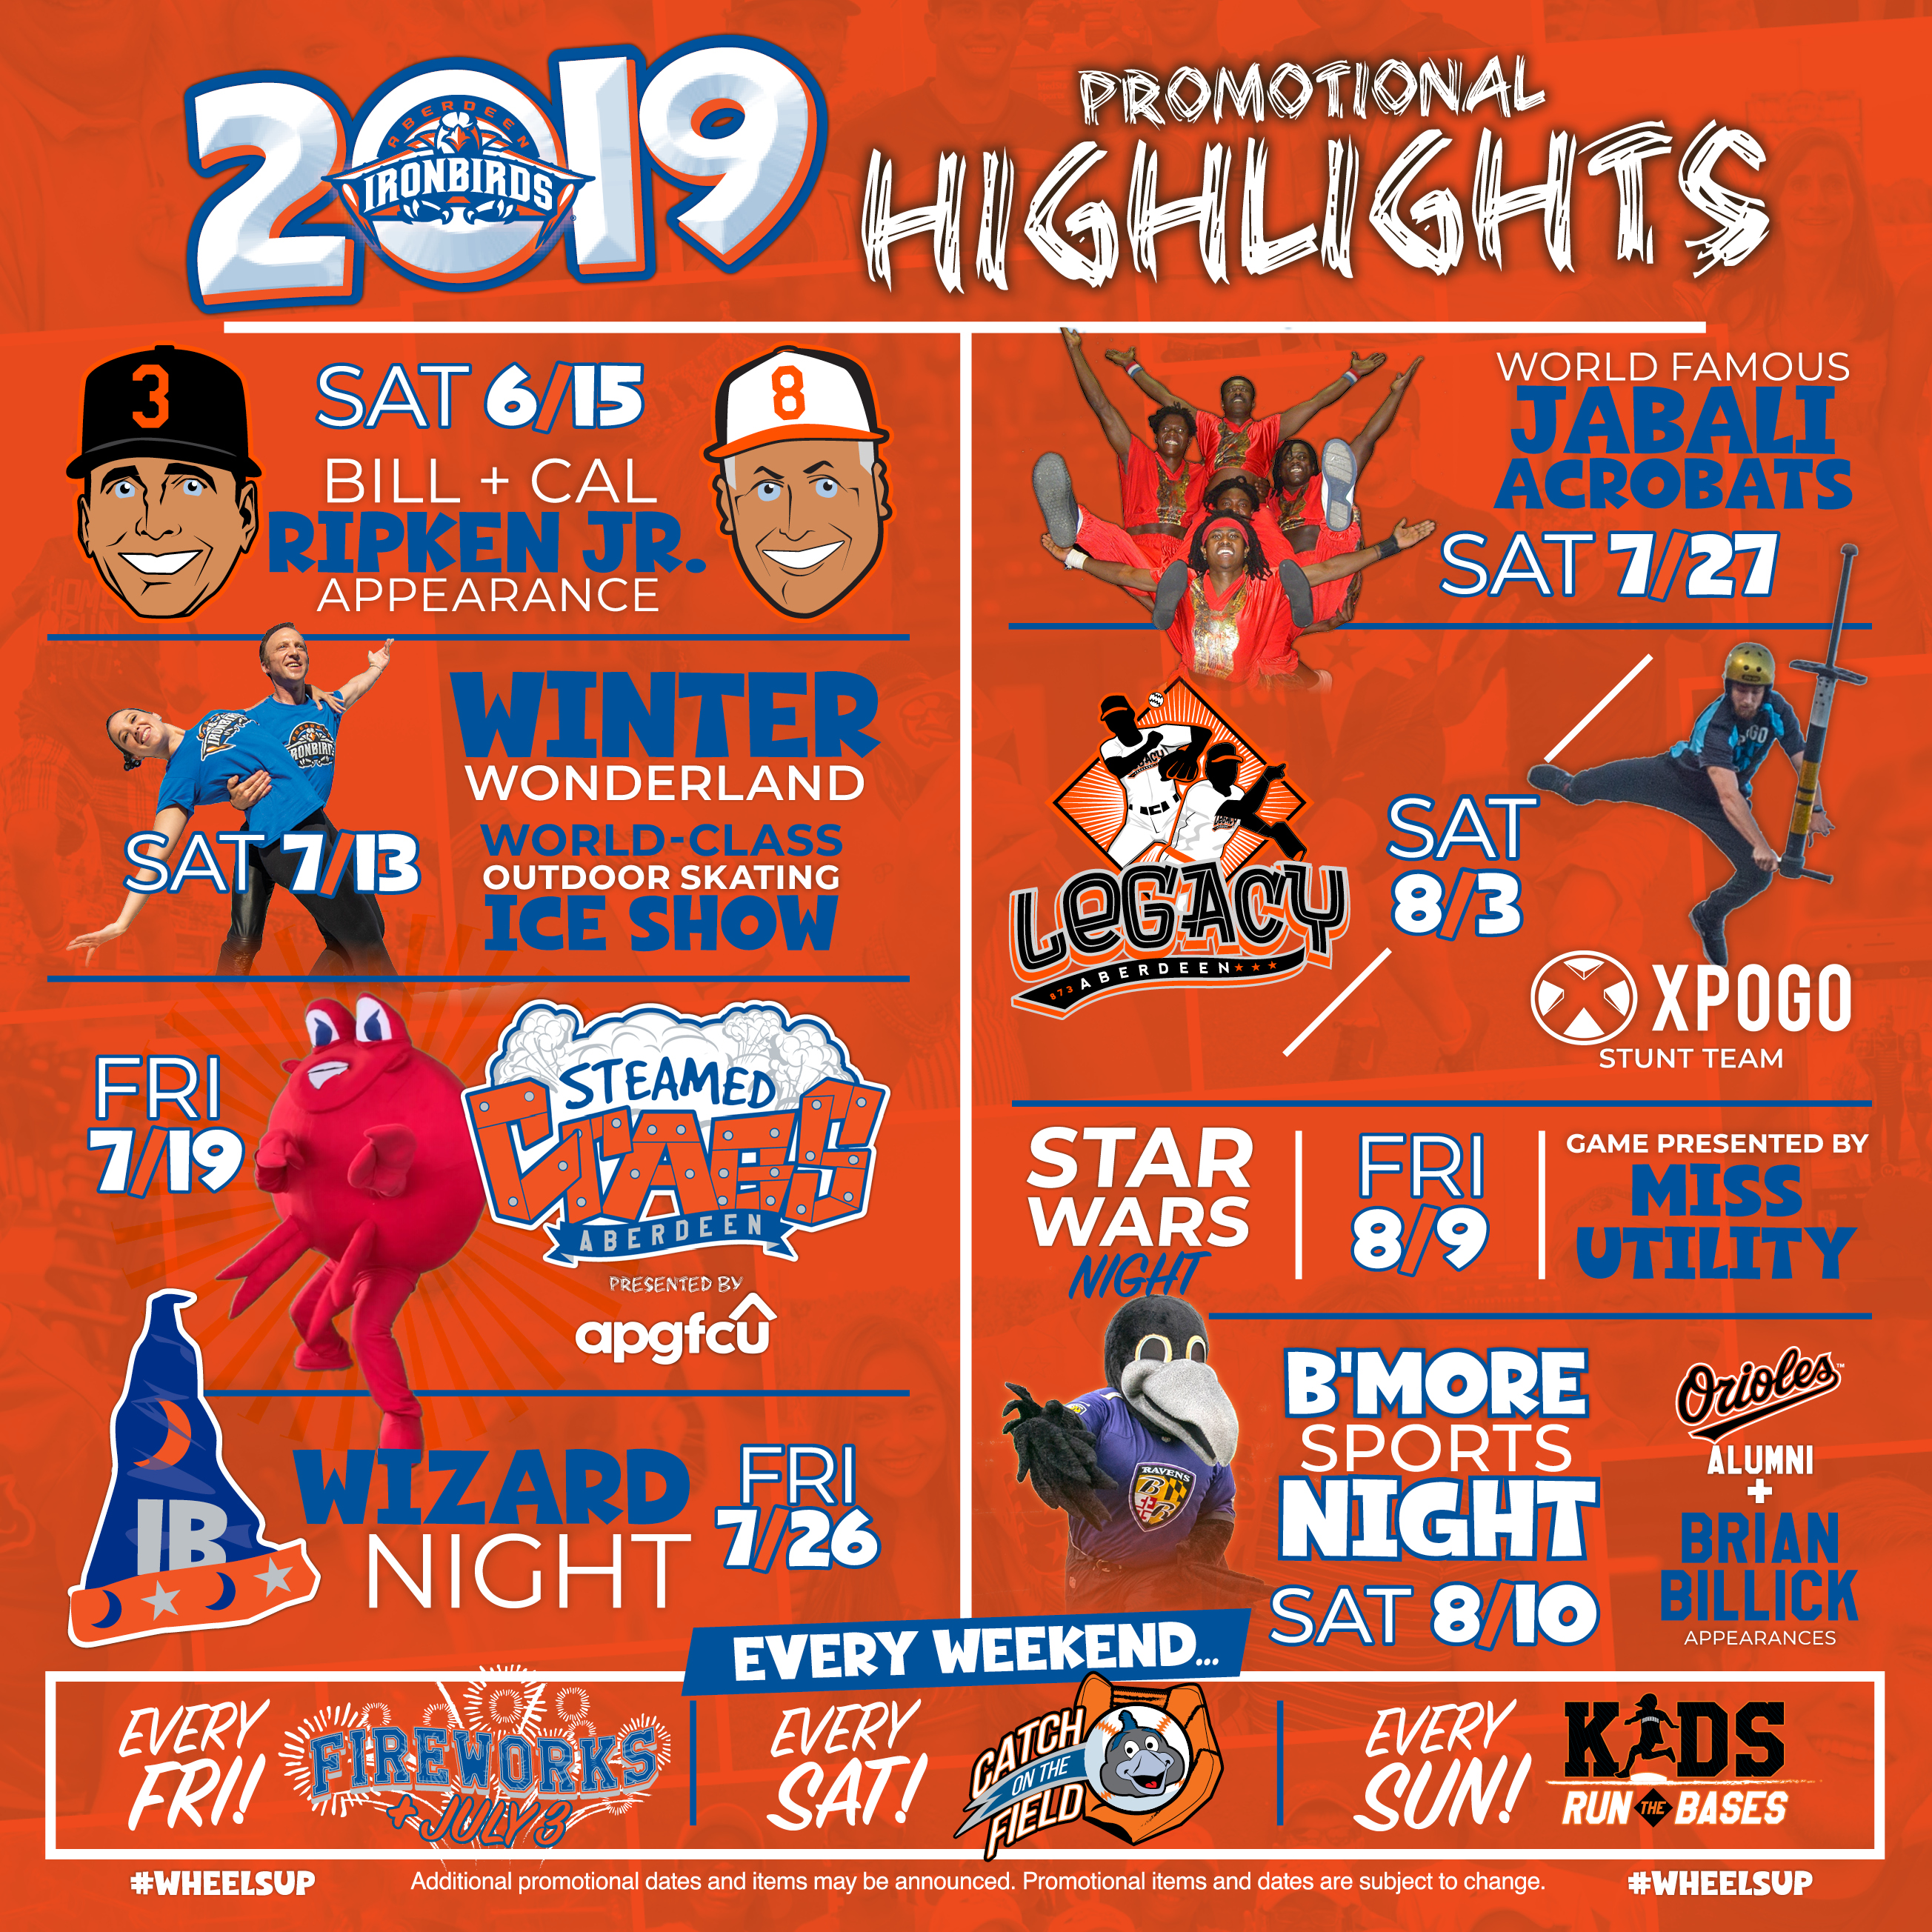 photograph relating to Orioles Printable Schedule named IronBirds 2019 Bargains IronBirds